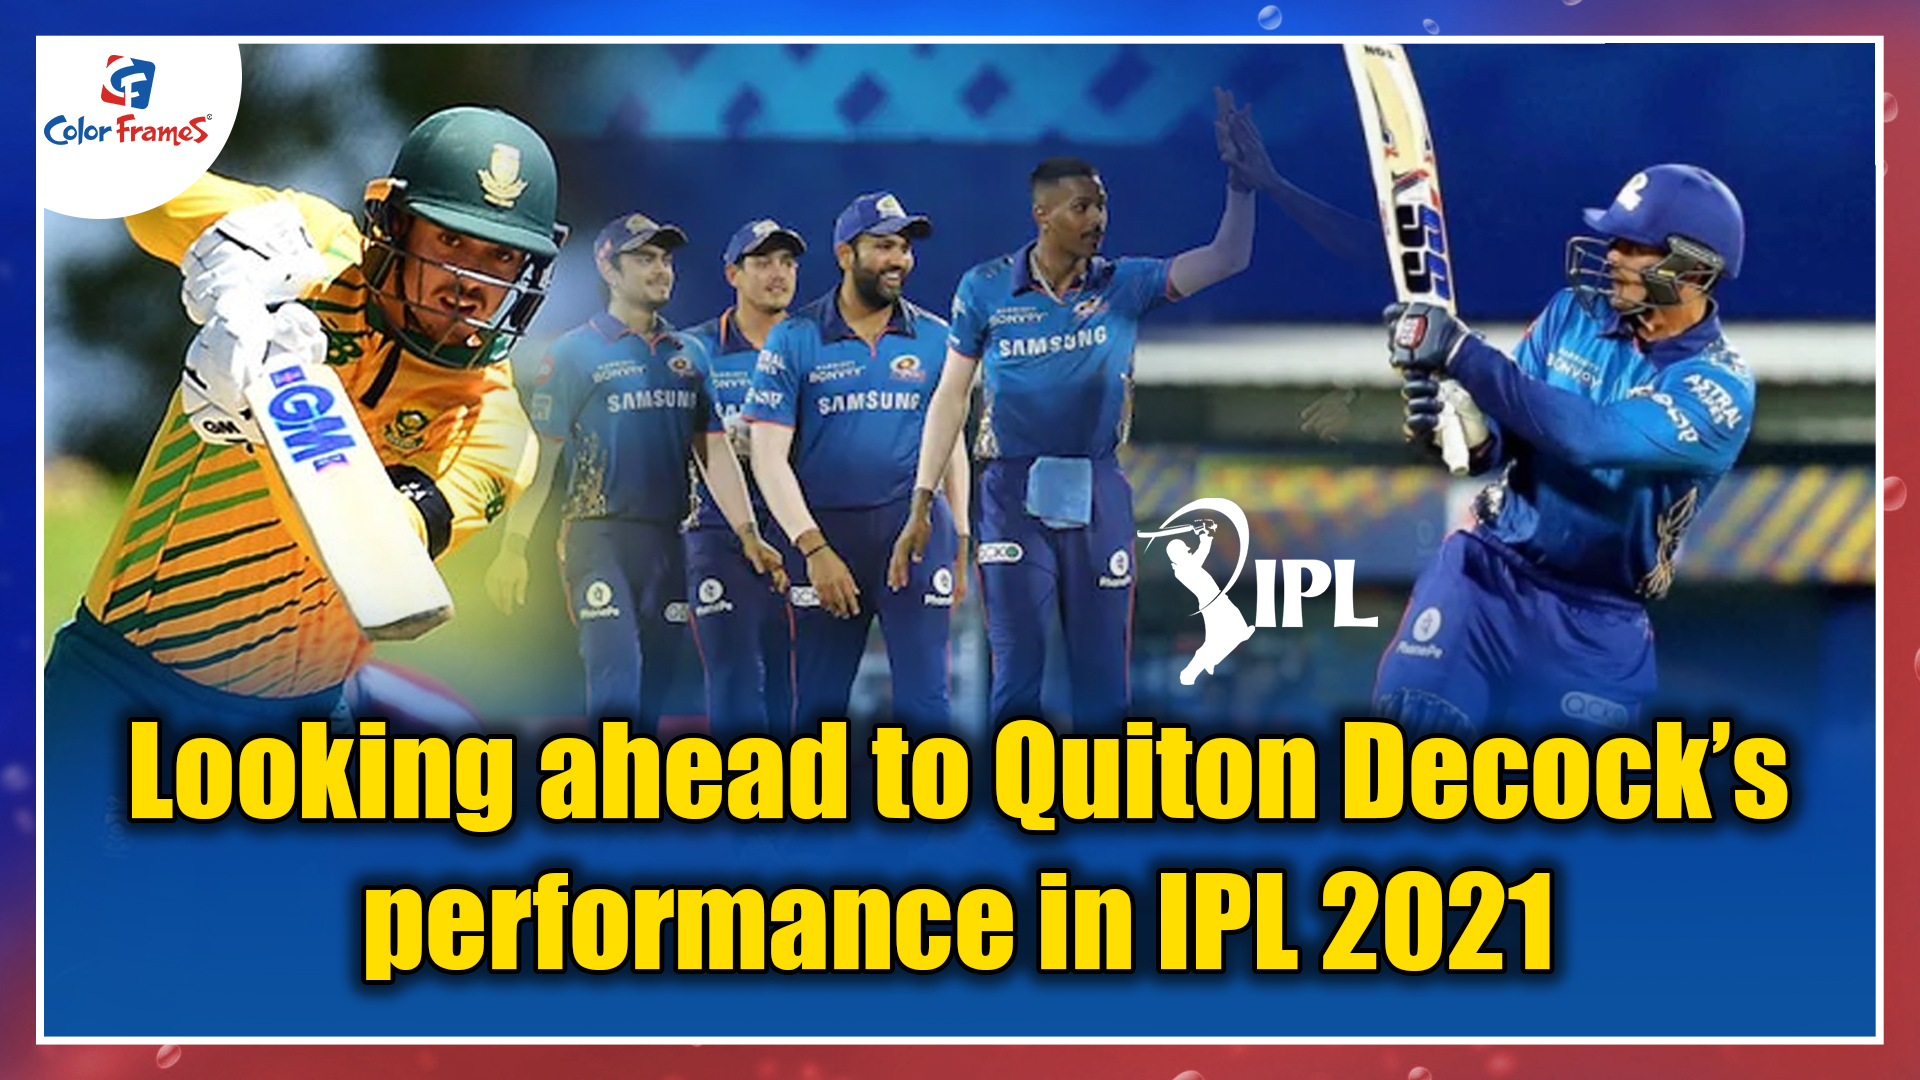 Looking ahead to Quiton Decock's performance in IPL 2021